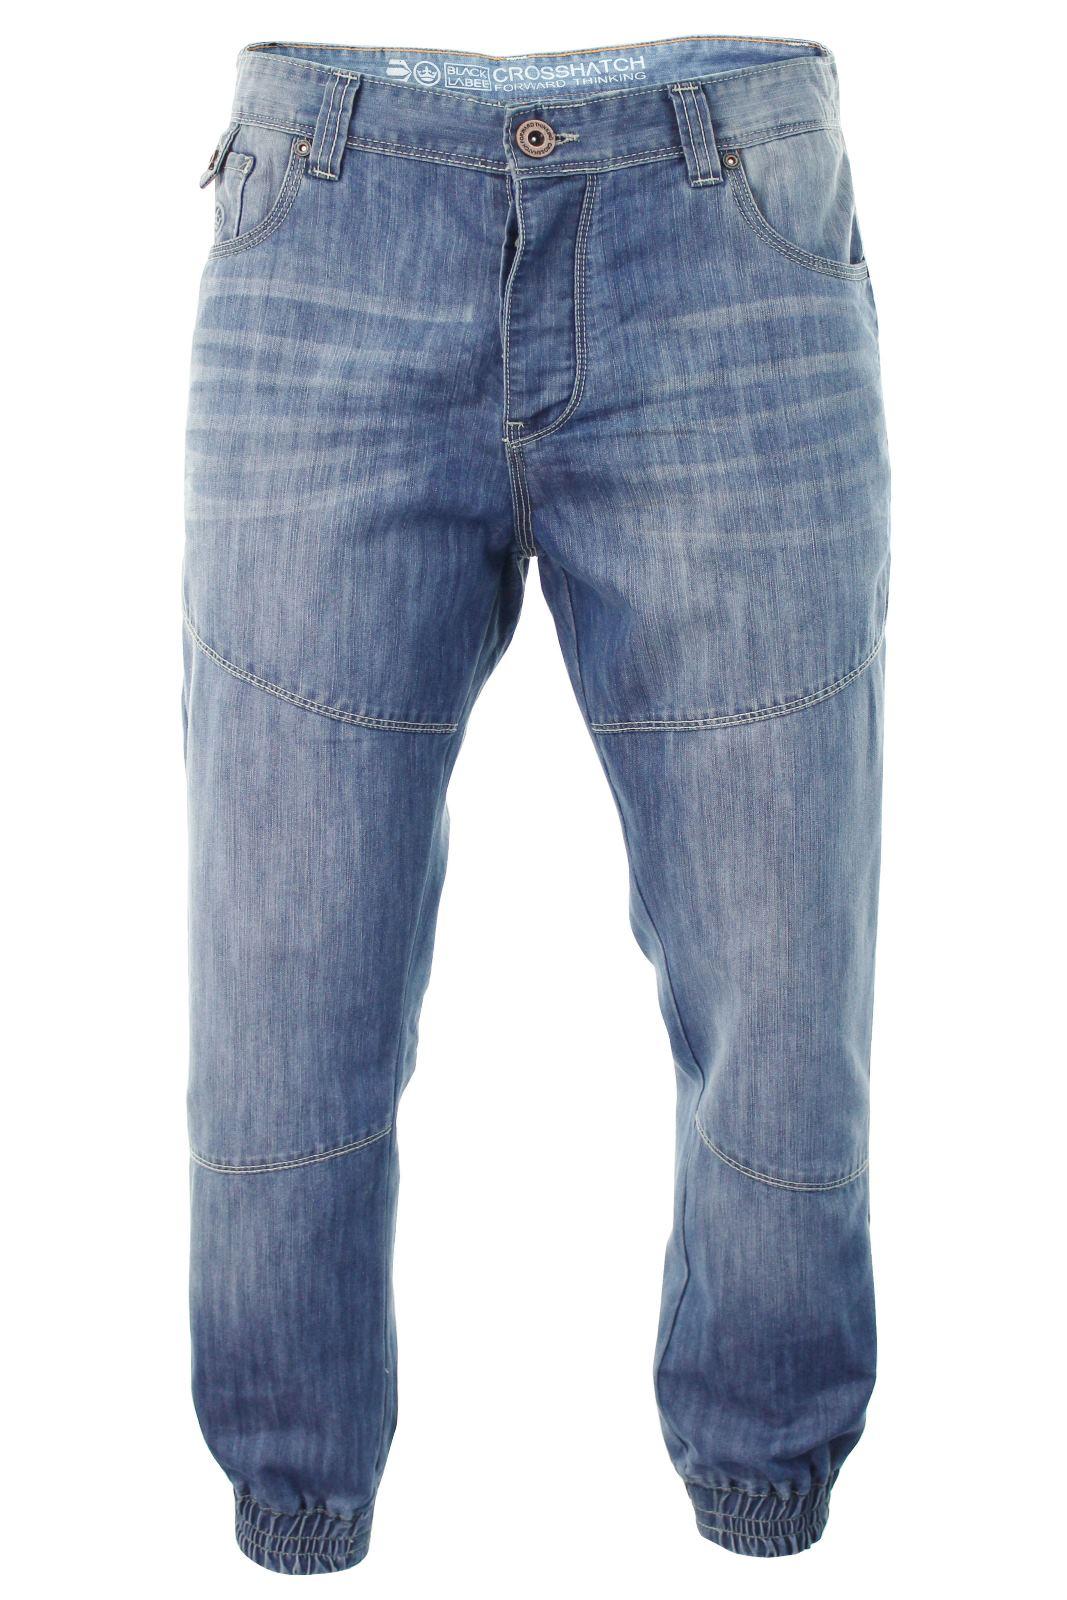 mens crosshatch 39 zenico 39 cuffed jeans raw stone washed denim button fly ebay. Black Bedroom Furniture Sets. Home Design Ideas